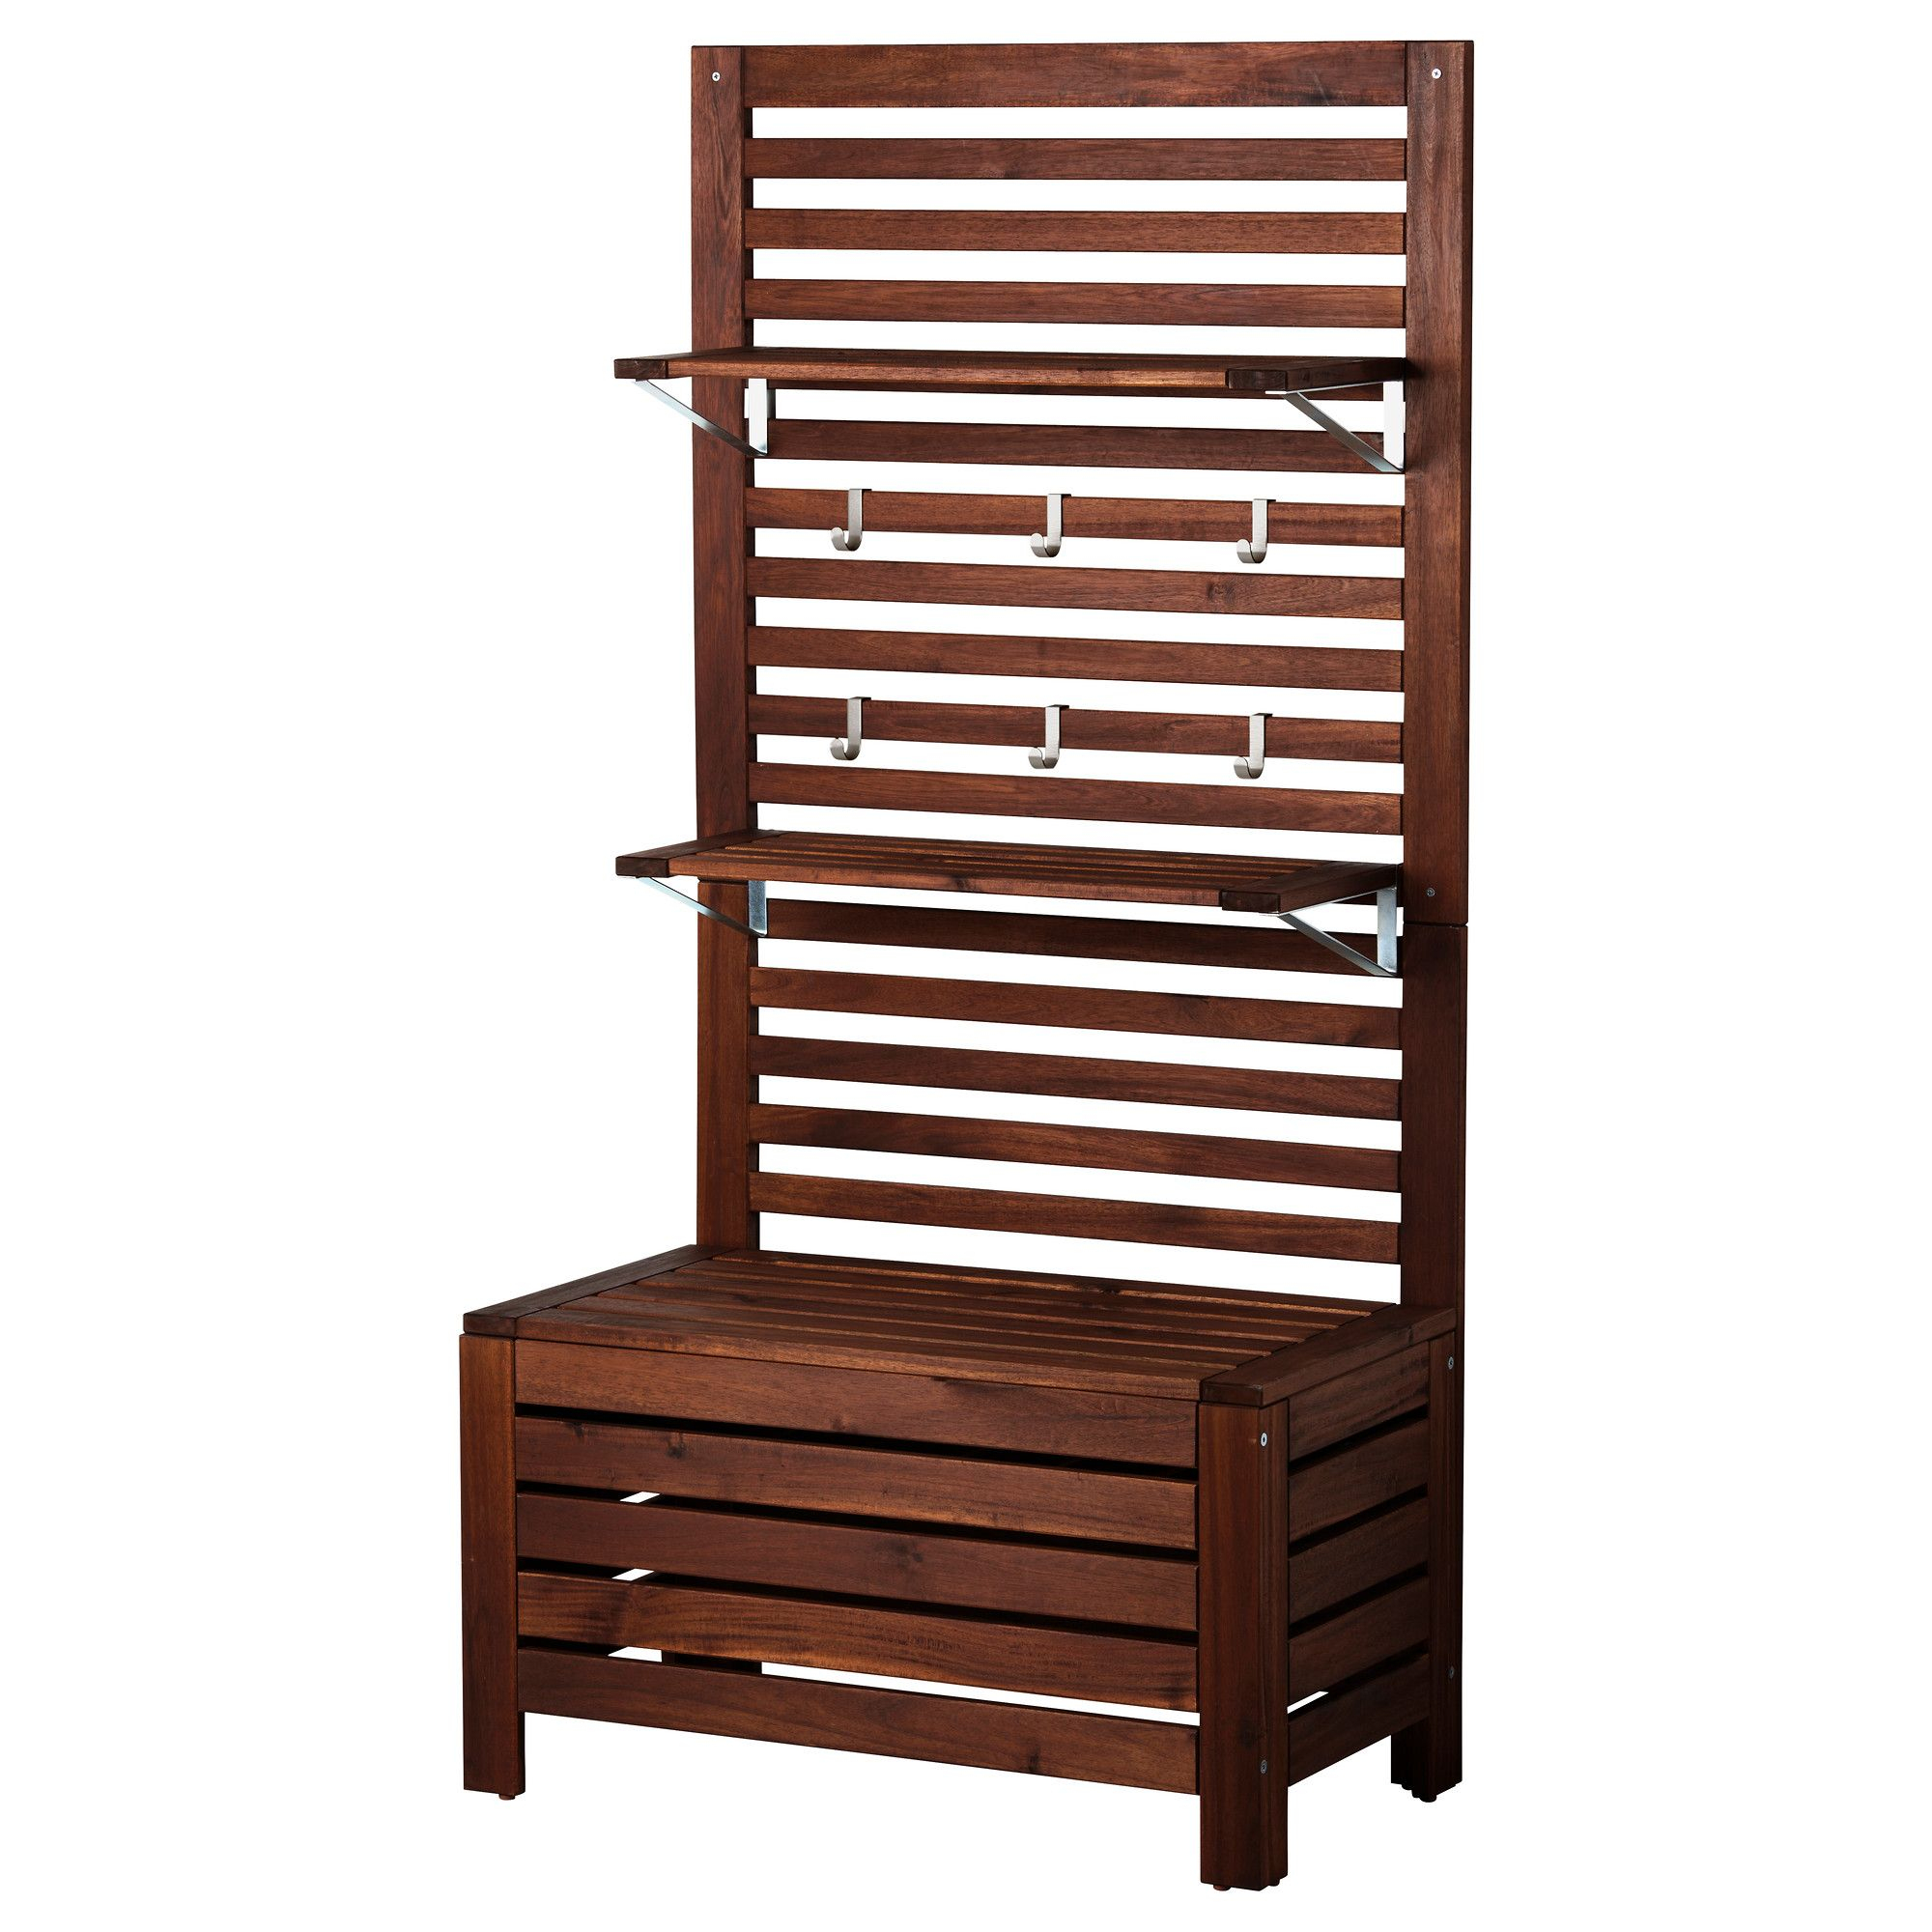 Ikea Applaro Brown Stained Brown Bench W/panel And Shelves ... tout Coffre Jardin Ikea